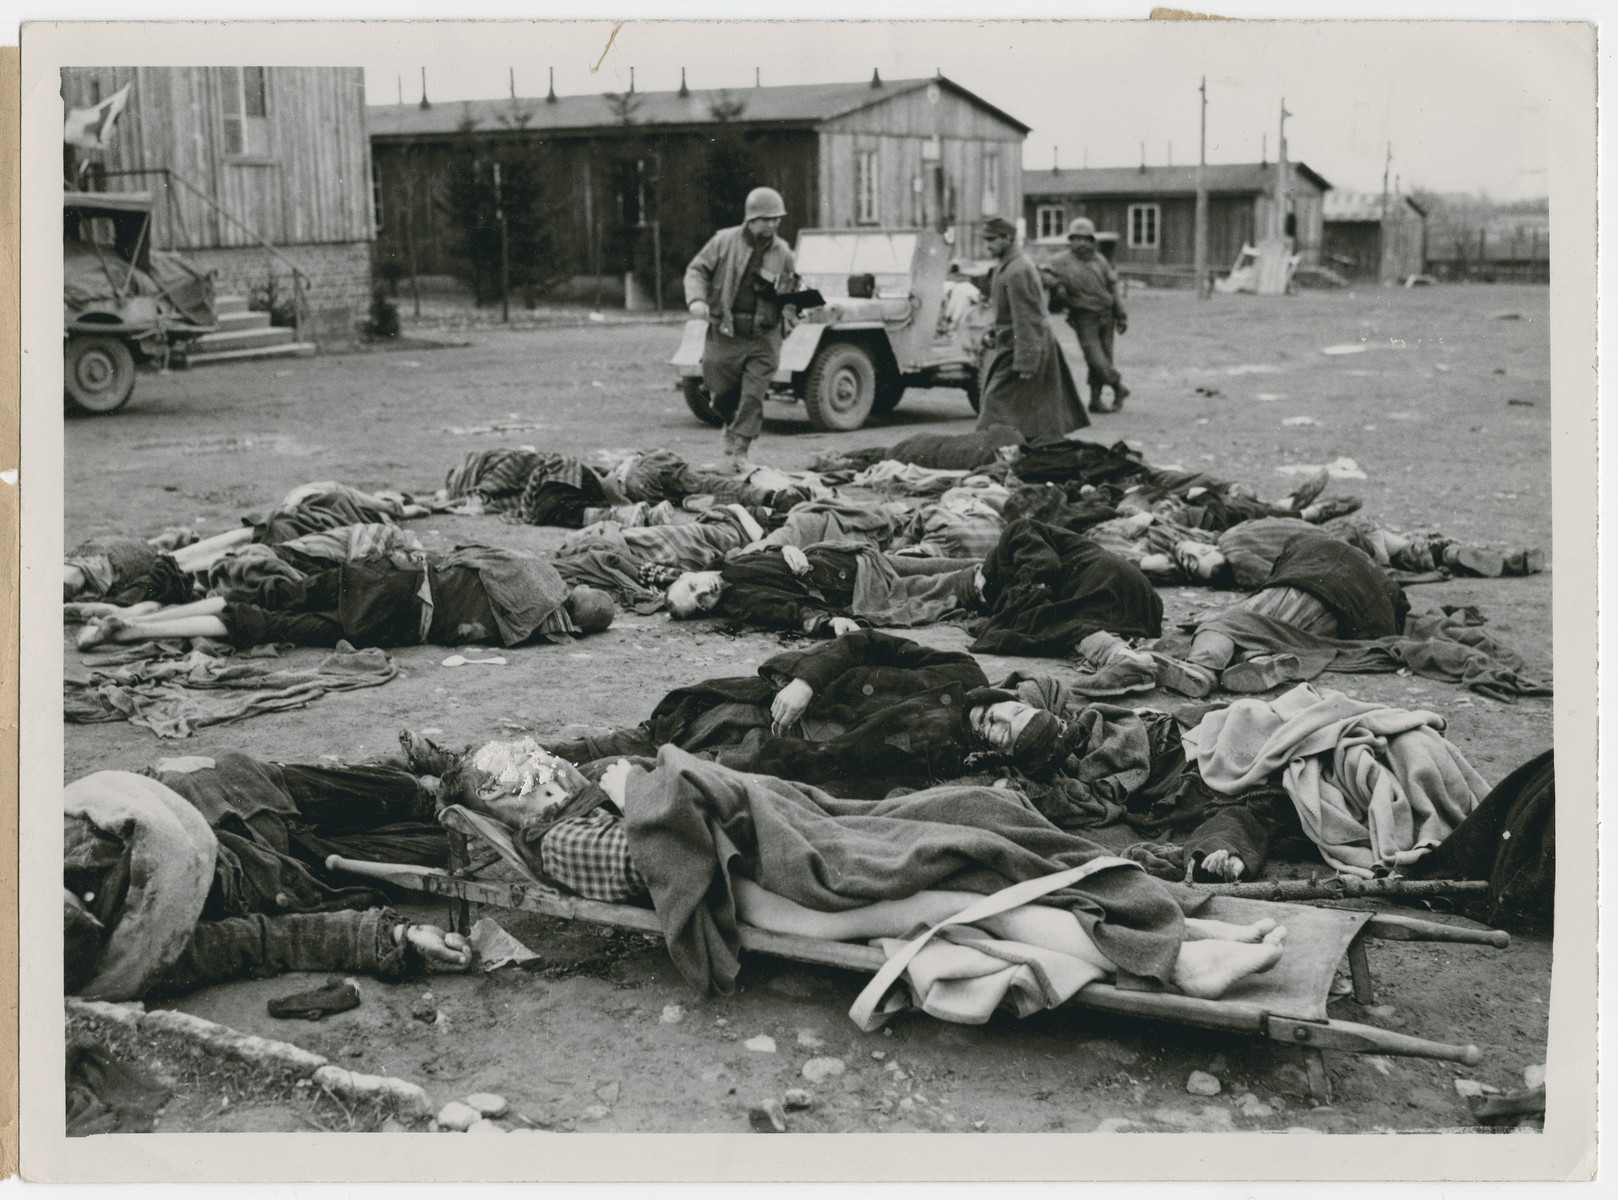 "The U.S. Army inspects bodies of slain prisoners at the Ohrdruf concentration camp.  Original caption reads:  ""Here are the bodies of some of the slain prisoners.  The case of the man on the litter in the foreground is being carefully investigated.  According to survivors, this man always said he was an American, and he is believed to have been either a flyer or a paratrooper""."